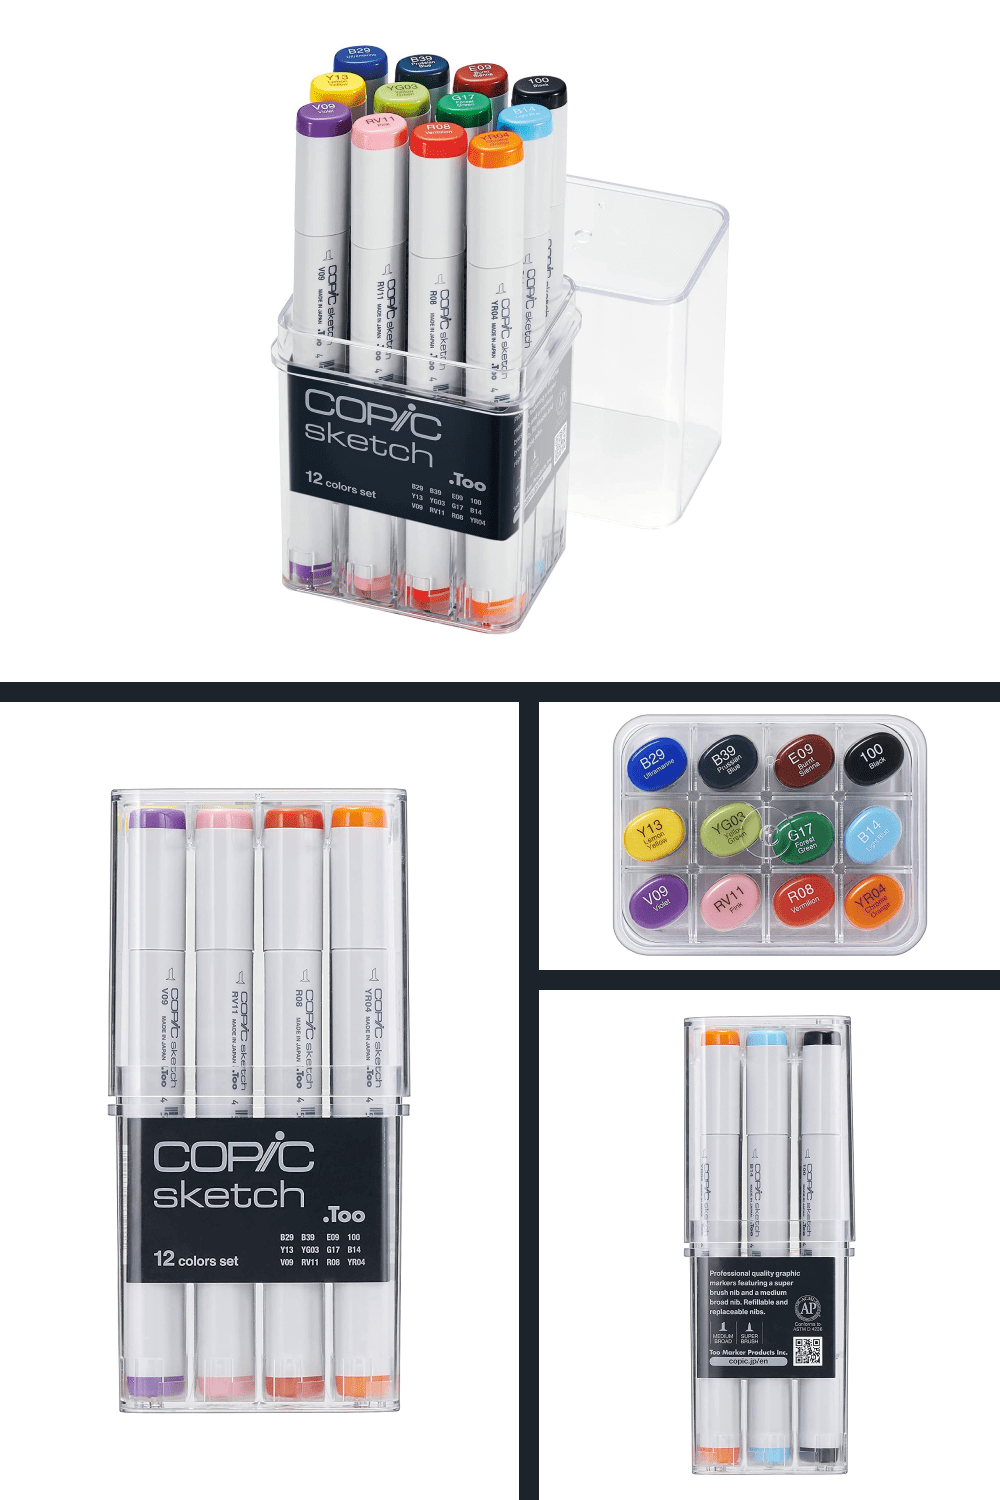 Packaged in a clear plastic case, a sketch set is the ideal way to begin or add to a marker collection.